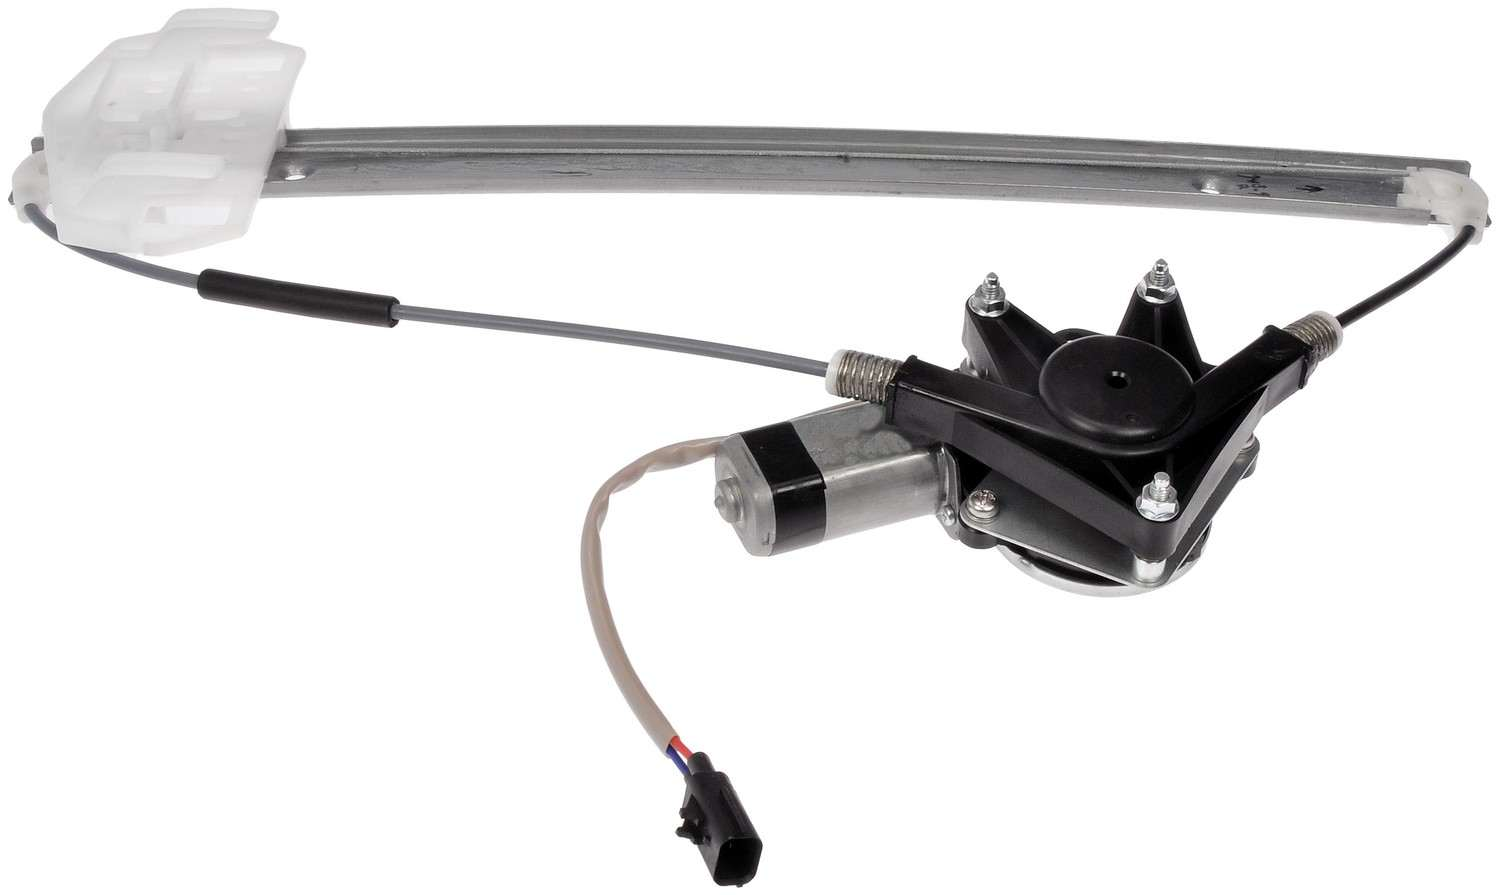 DORMAN OE SOLUTIONS - Power Window Motor And Regulator Assembly (Front Right) - DRE 748-913